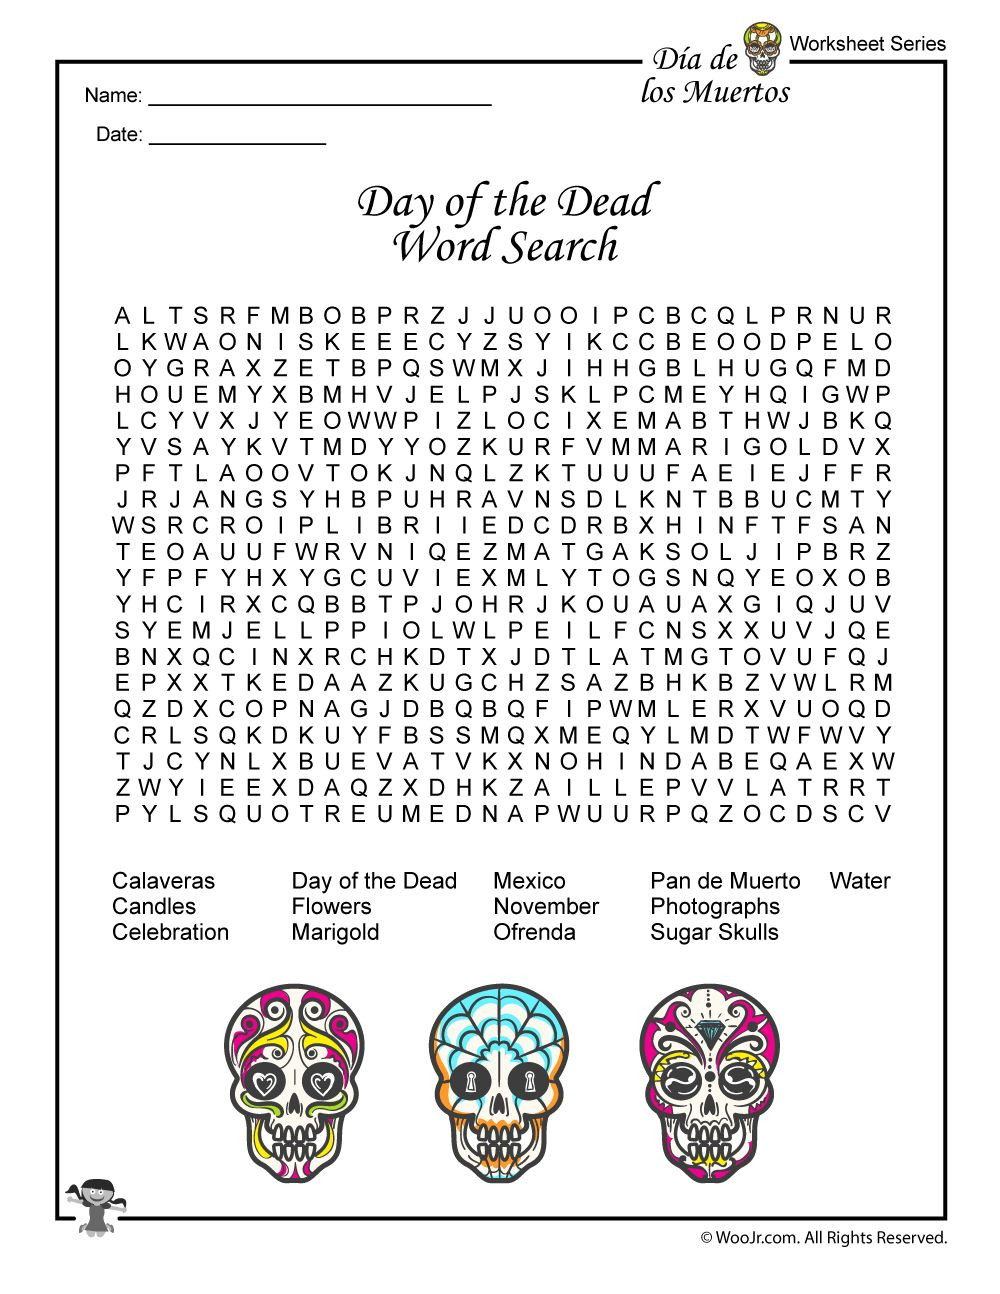 Day of the Dead Activities Worksheets & Lesson Plan